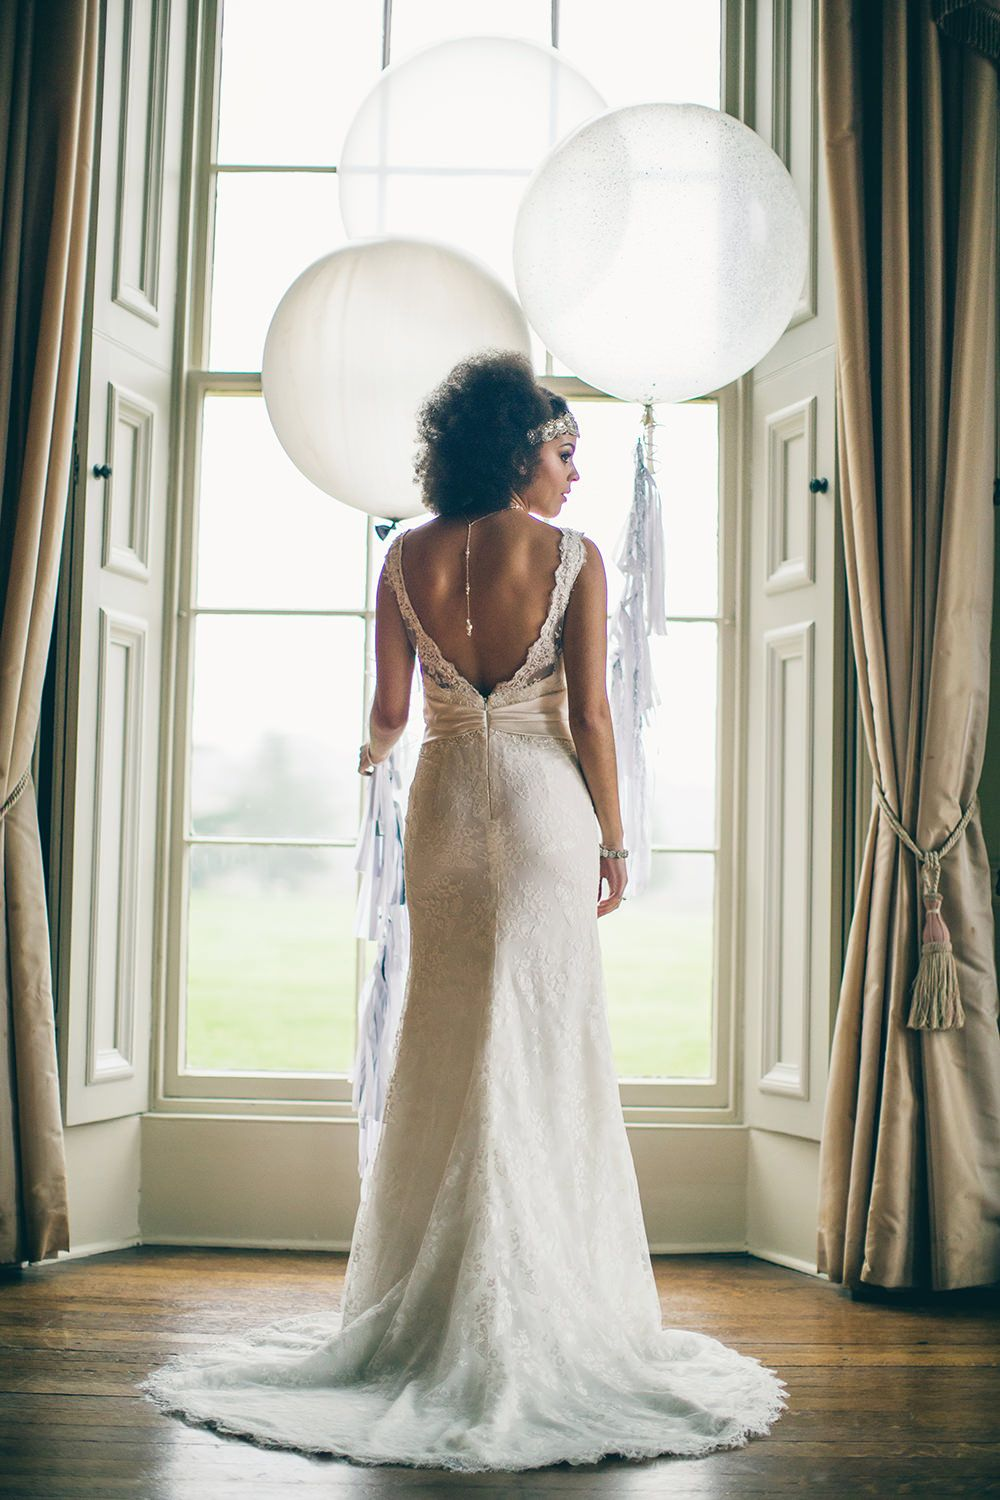 Lusan Mandongus And Eliza Jane Howell Wedding Dresses For A Bridal Inspiration Shoot At Prestwold Hall With Gowns From The Shop Nottingham